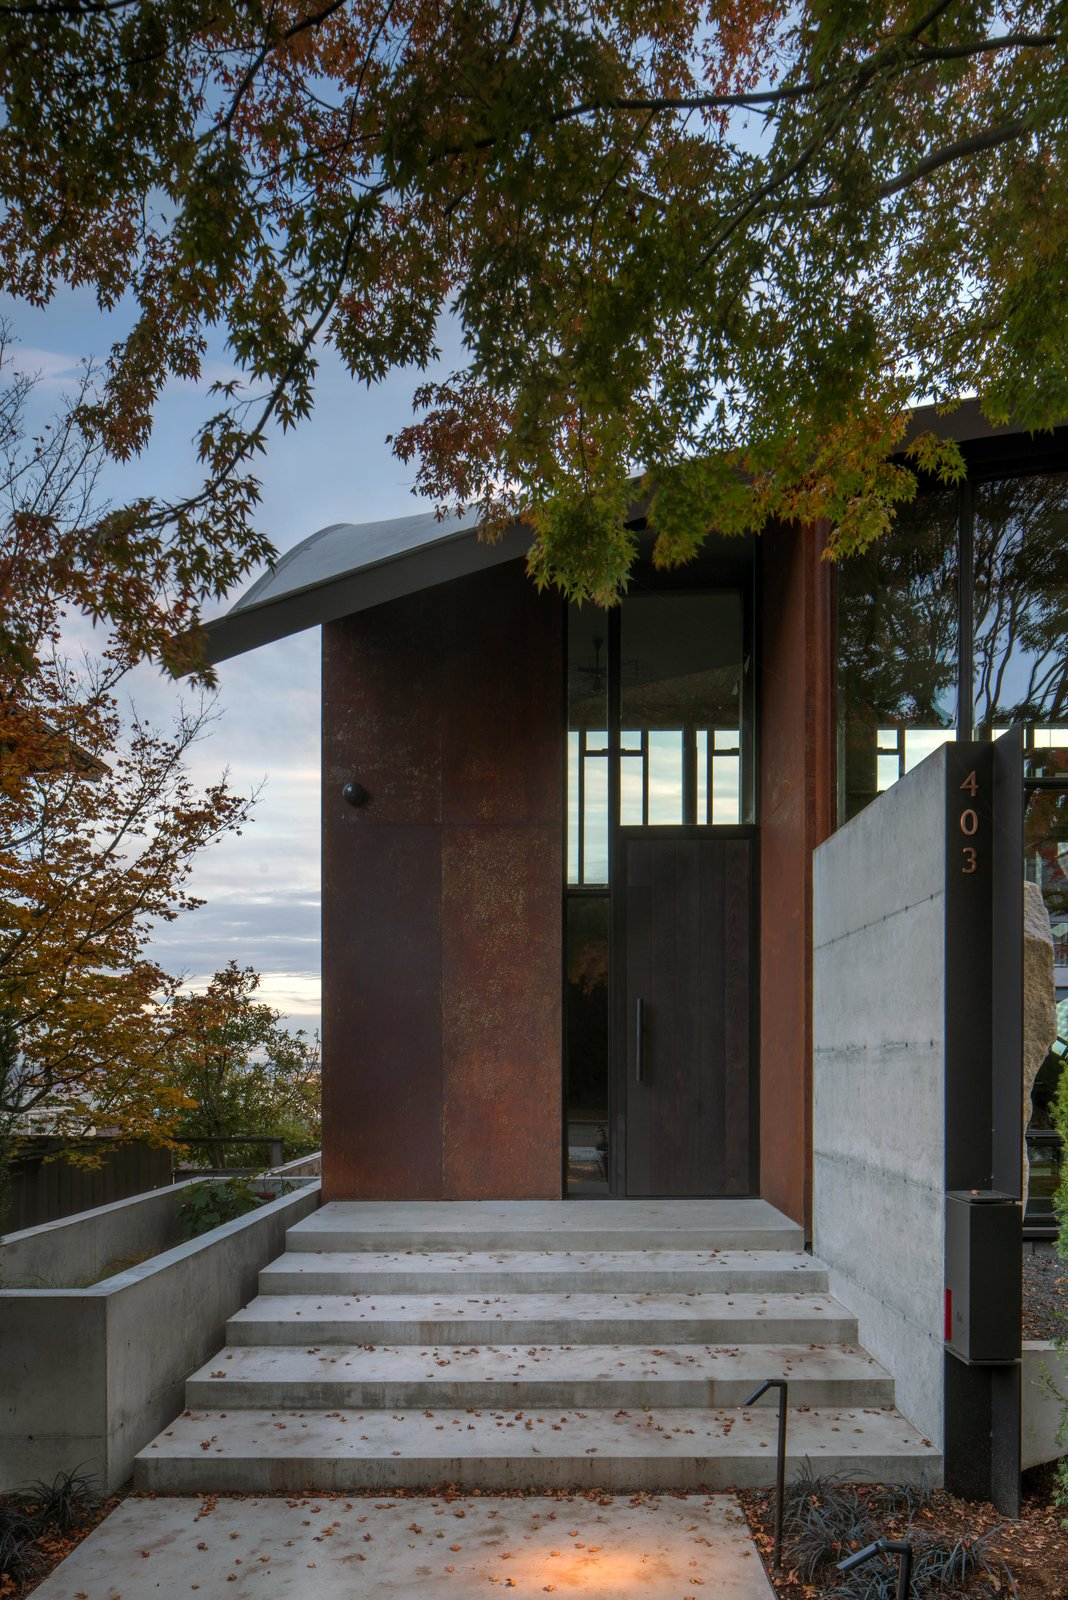 Exterior, Metal Siding Material, Concrete Siding Material, and Curved RoofLine Meg Home   Olson Kundig  Meg Home by Olson Kundig